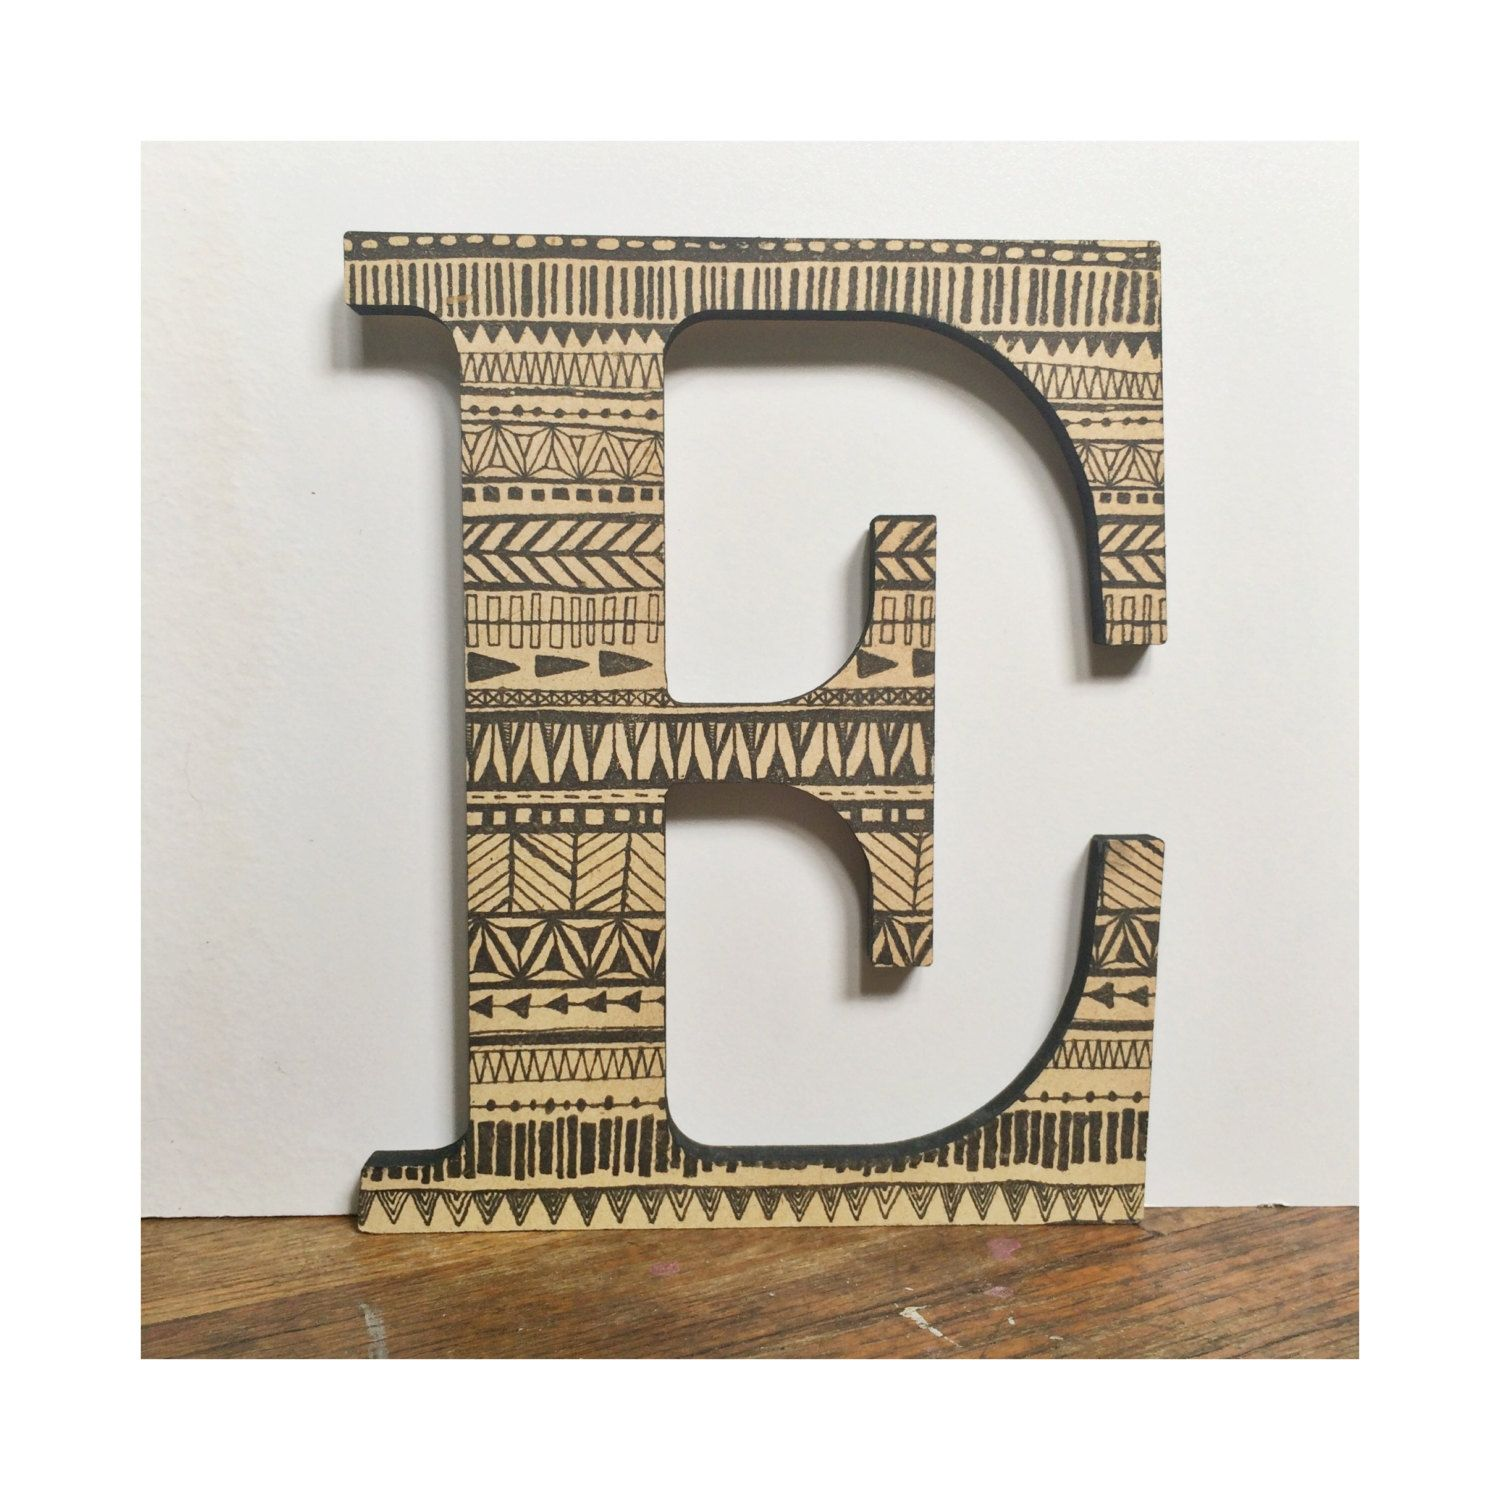 Decorative Wall Letter E Wood Tribal Geometric Pattern Print Home Decor Gallery Wall Nursery By Missouriheartsco